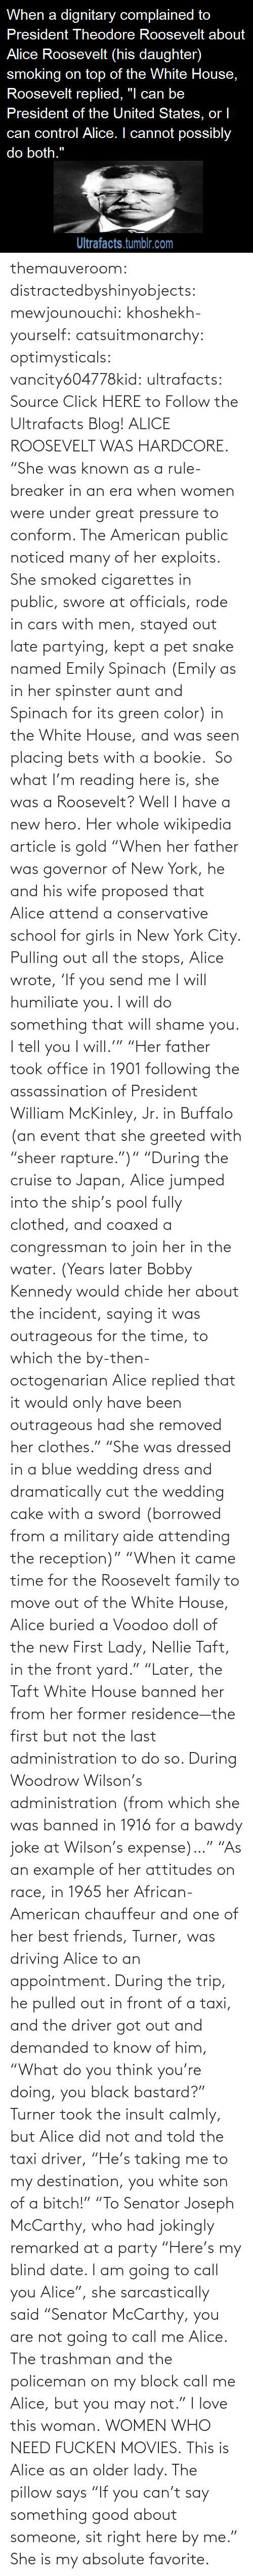 "block: themauveroom: distractedbyshinyobjects:  mewjounouchi:  khoshekh-yourself:  catsuitmonarchy:  optimysticals:  vancity604778kid:  ultrafacts:     Source Click HERE to Follow the Ultrafacts Blog!     ALICE ROOSEVELT WAS HARDCORE. ""She was known as a rule-breaker in an era when women were under great pressure to conform. The American public noticed many of her exploits. She smoked cigarettes in public, swore at officials, rode in cars with men, stayed out late partying, kept a pet snake named Emily Spinach (Emily as in her spinster aunt and Spinach for its green color) in the White House, and was seen placing bets with a bookie.    So what I'm reading here is, she was a Roosevelt?  Well I have a new hero.  Her whole wikipedia article is gold ""When her father was governor of New York, he and his wife proposed that Alice attend a conservative school for girls in New York City. Pulling out all the stops, Alice wrote, 'If you send me I will humiliate you. I will do something that will shame you. I tell you I will.'"" ""Her father took office in 1901 following the assassination of President William McKinley, Jr. in Buffalo (an event that she greeted with ""sheer rapture."")"" ""During the cruise to Japan, Alice jumped into the ship's pool fully clothed, and coaxed a congressman to join her in the water. (Years later Bobby Kennedy would chide her about the incident, saying it was outrageous for the time, to which the by-then-octogenarian Alice replied that it would only have been outrageous had she removed her clothes."" ""She was dressed in a blue wedding dress and dramatically cut the wedding cake with a sword (borrowed from a military aide attending the reception)"" ""When it came time for the Roosevelt family to move out of the White House, Alice buried a Voodoo doll of the new First Lady, Nellie Taft, in the front yard."" ""Later, the Taft White House banned her from her former residence—the first but not the last administration to do so. During Woodrow Wilson's administration (from which she was banned in 1916 for a bawdy joke at Wilson's expense)…"" ""As an example of her attitudes on race, in 1965 her African-American chauffeur and one of her best friends, Turner, was driving Alice to an appointment. During the trip, he pulled out in front of a taxi, and the driver got out and demanded to know of him, ""What do you think you're doing, you black bastard?"" Turner took the insult calmly, but Alice did not and told the taxi driver, ""He's taking me to my destination, you white son of a bitch!"" ""To Senator Joseph McCarthy, who had jokingly remarked at a party ""Here's my blind date. I am going to call you Alice"", she sarcastically said ""Senator McCarthy, you are not going to call me Alice. The trashman and the policeman on my block call me Alice, but you may not.""  I love this woman.  WOMEN WHO NEED FUCKEN MOVIES.   This is Alice as an older lady. The pillow says ""If you can't say something good about someone, sit right here by me.""  She is my absolute favorite."